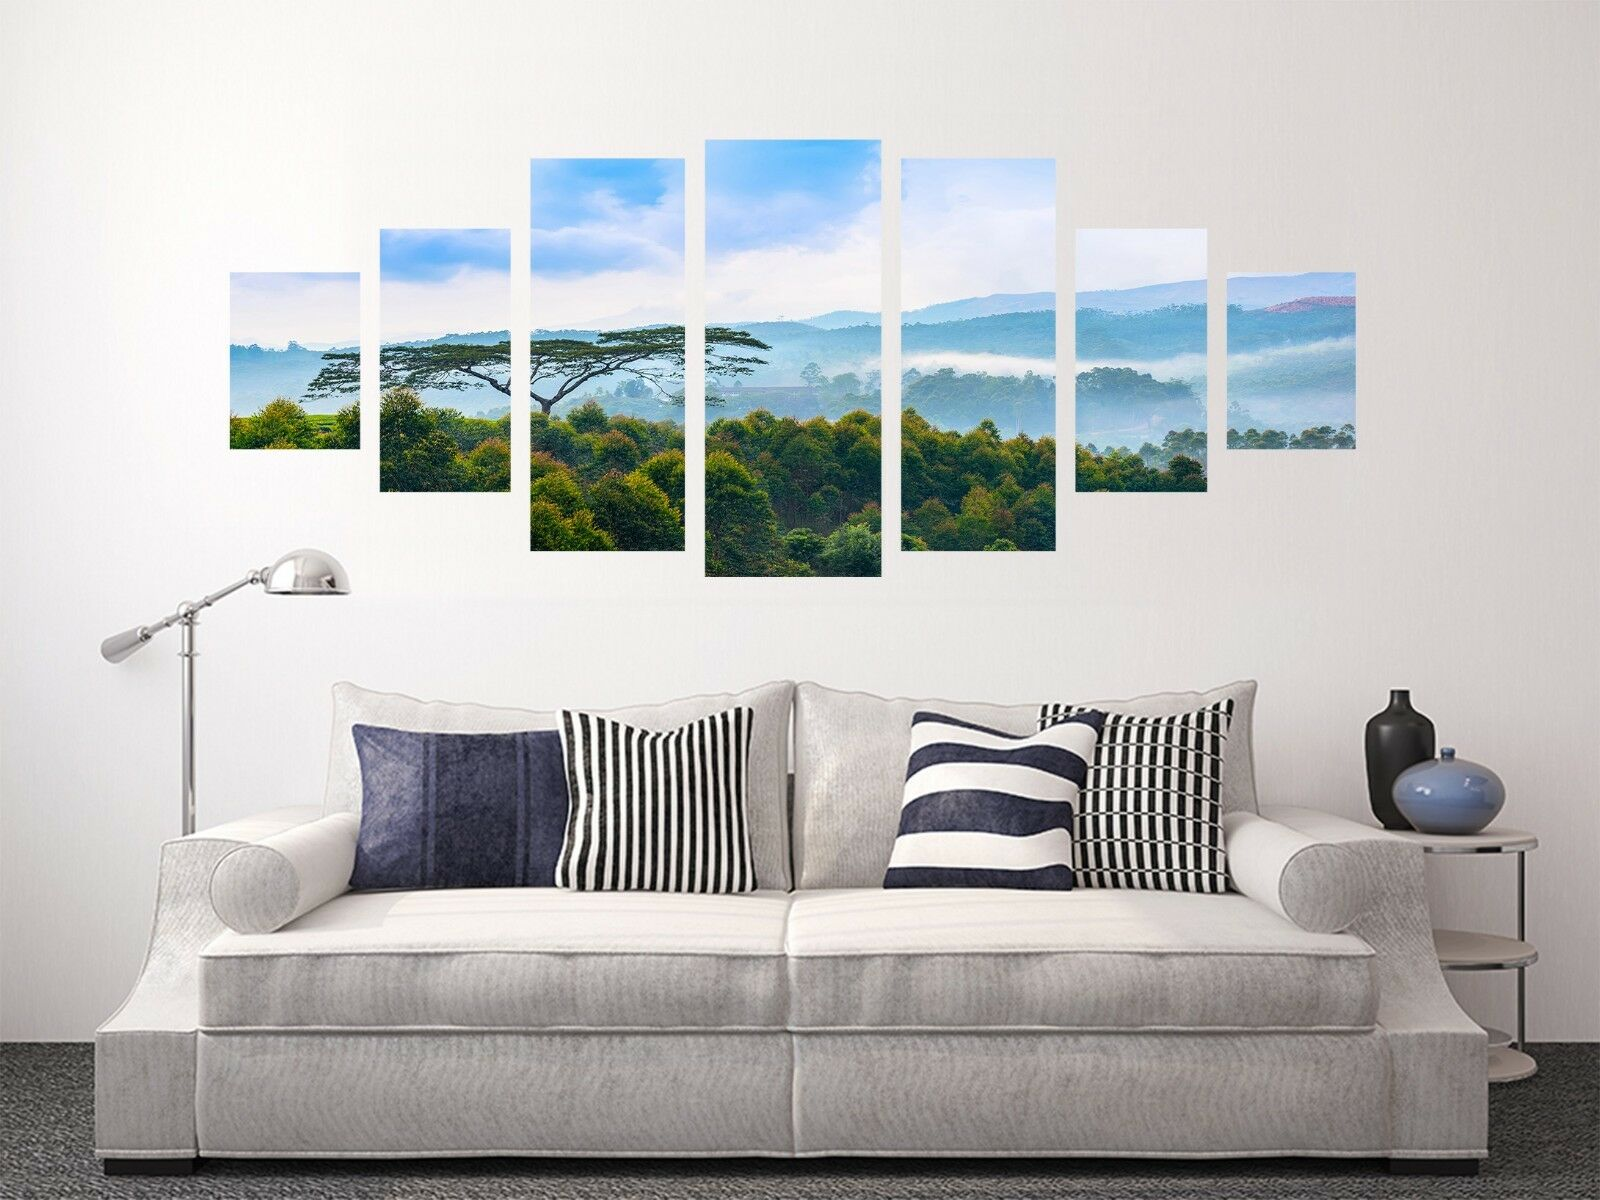 3D vert Forest 7 Unframed Print Wall Paper Decal Wall Deco Indoor AJ Jenny